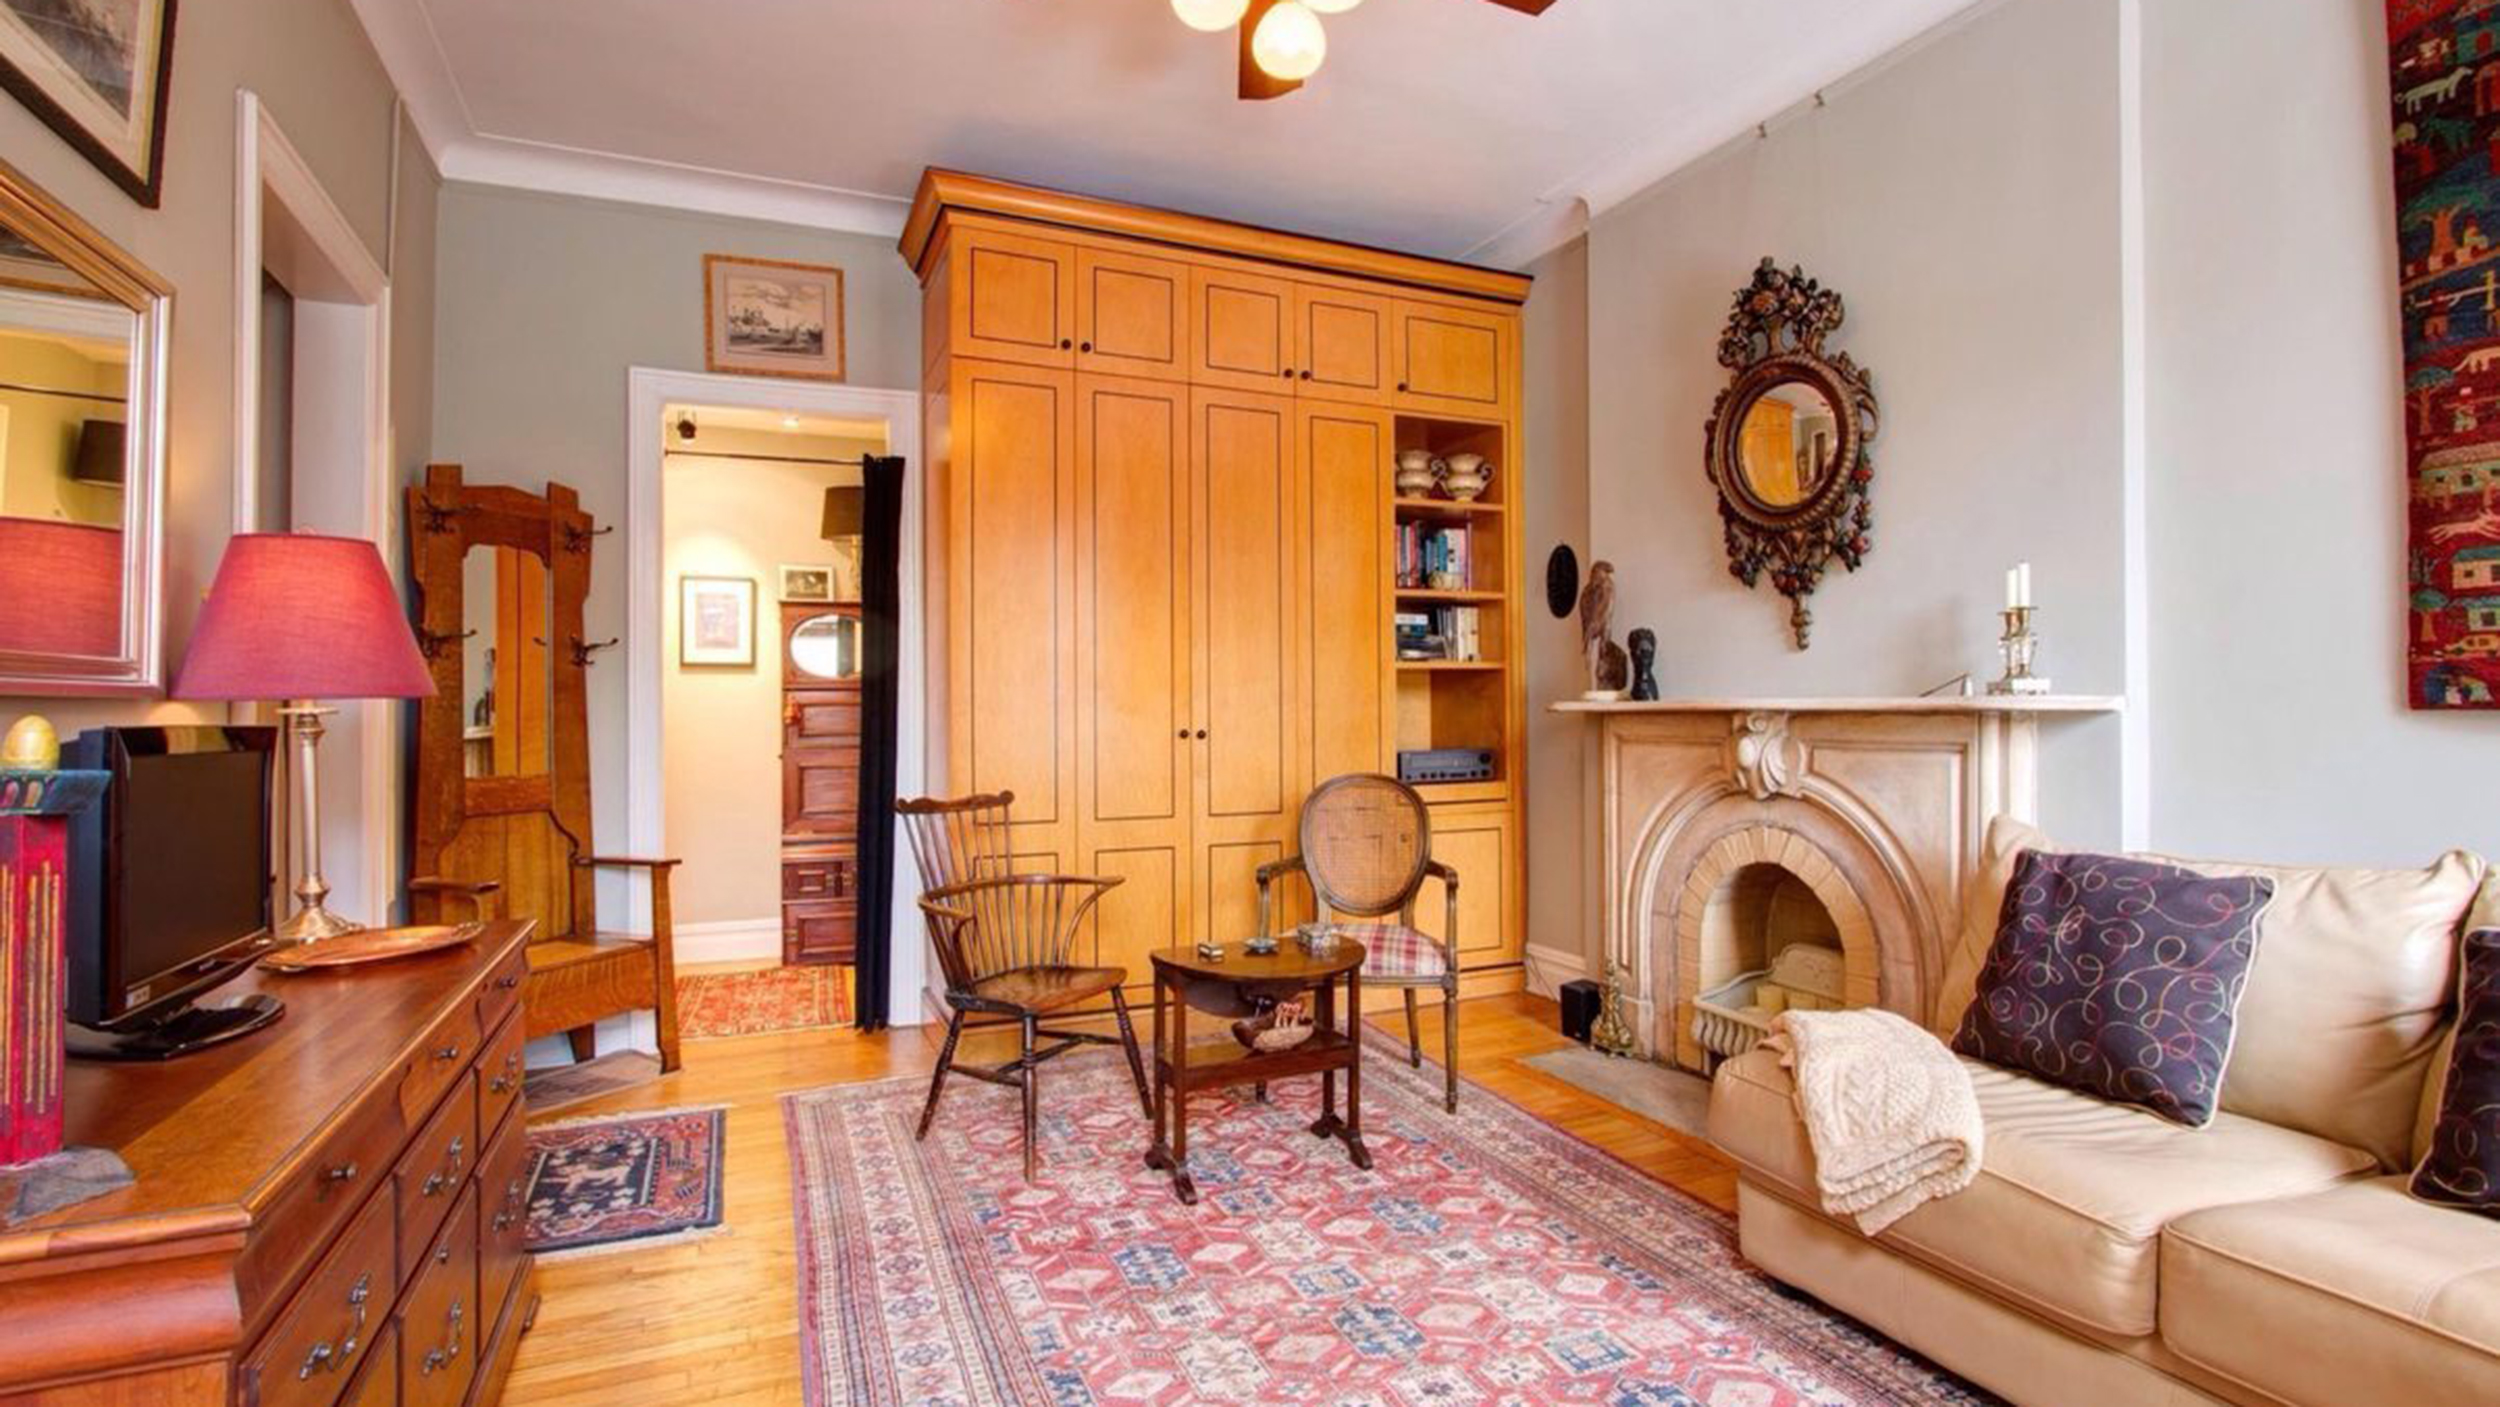 Louis C.K.'s buys NYC studio apartment — see inside ...